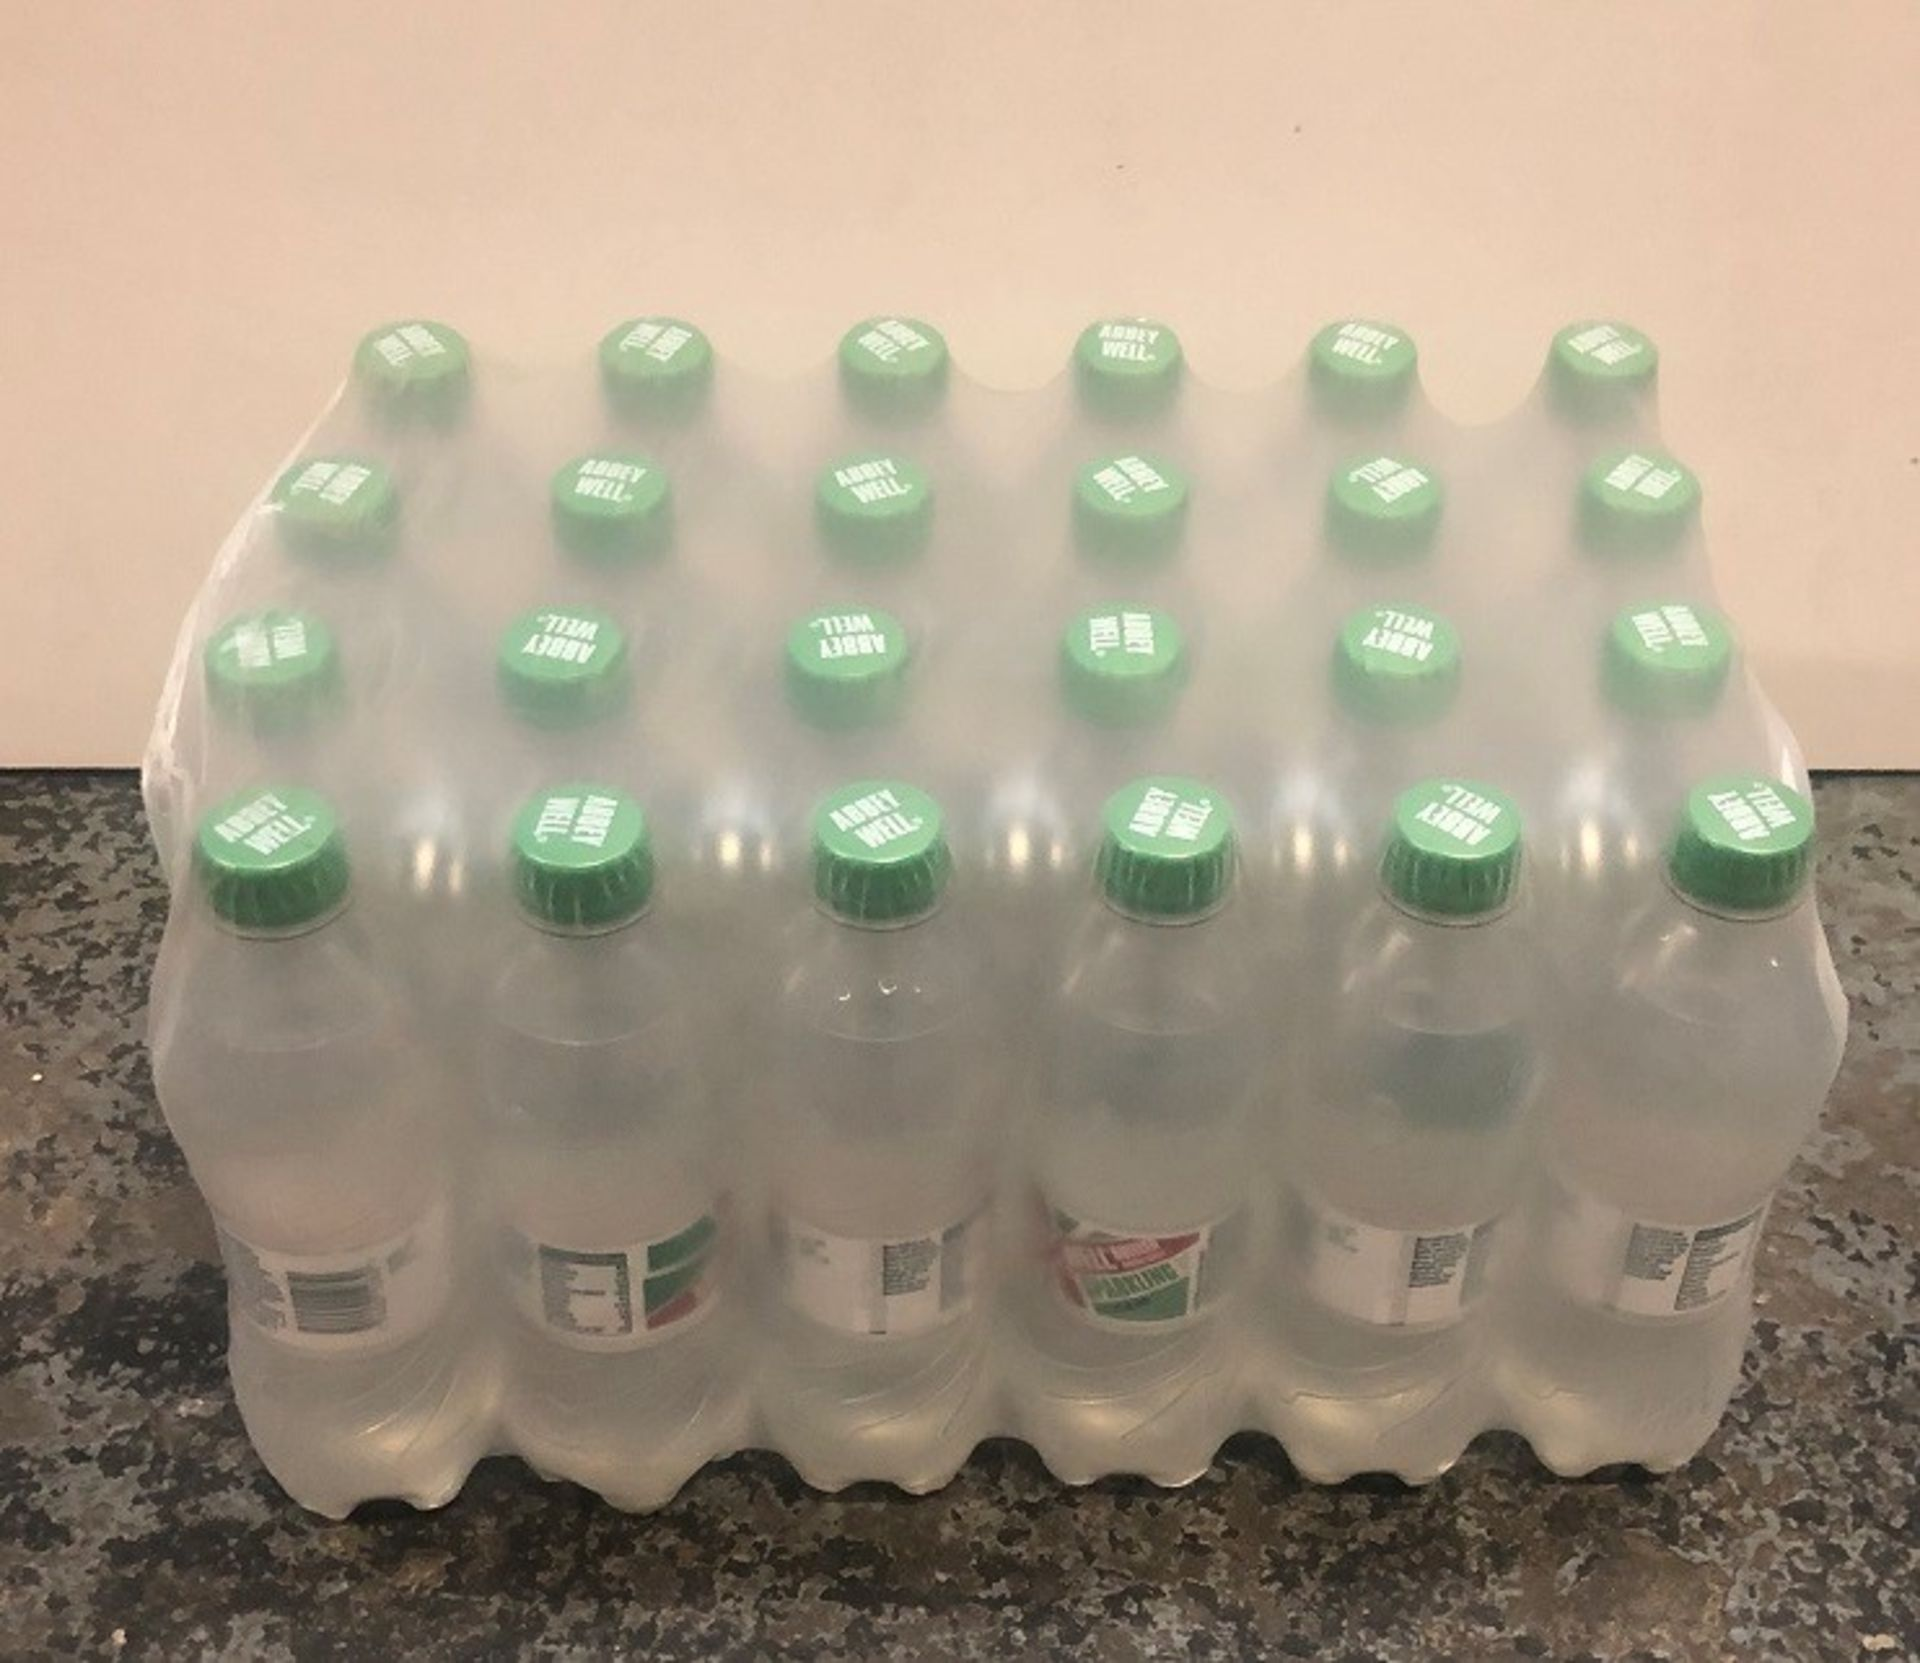 Lot 32 - 1 LOT TO CONTAIN 12 LARGE PACKS OF ABBEY WELL SPARKLING WATER / 24 BOTTLES PER PACK / BEST BEFORE: